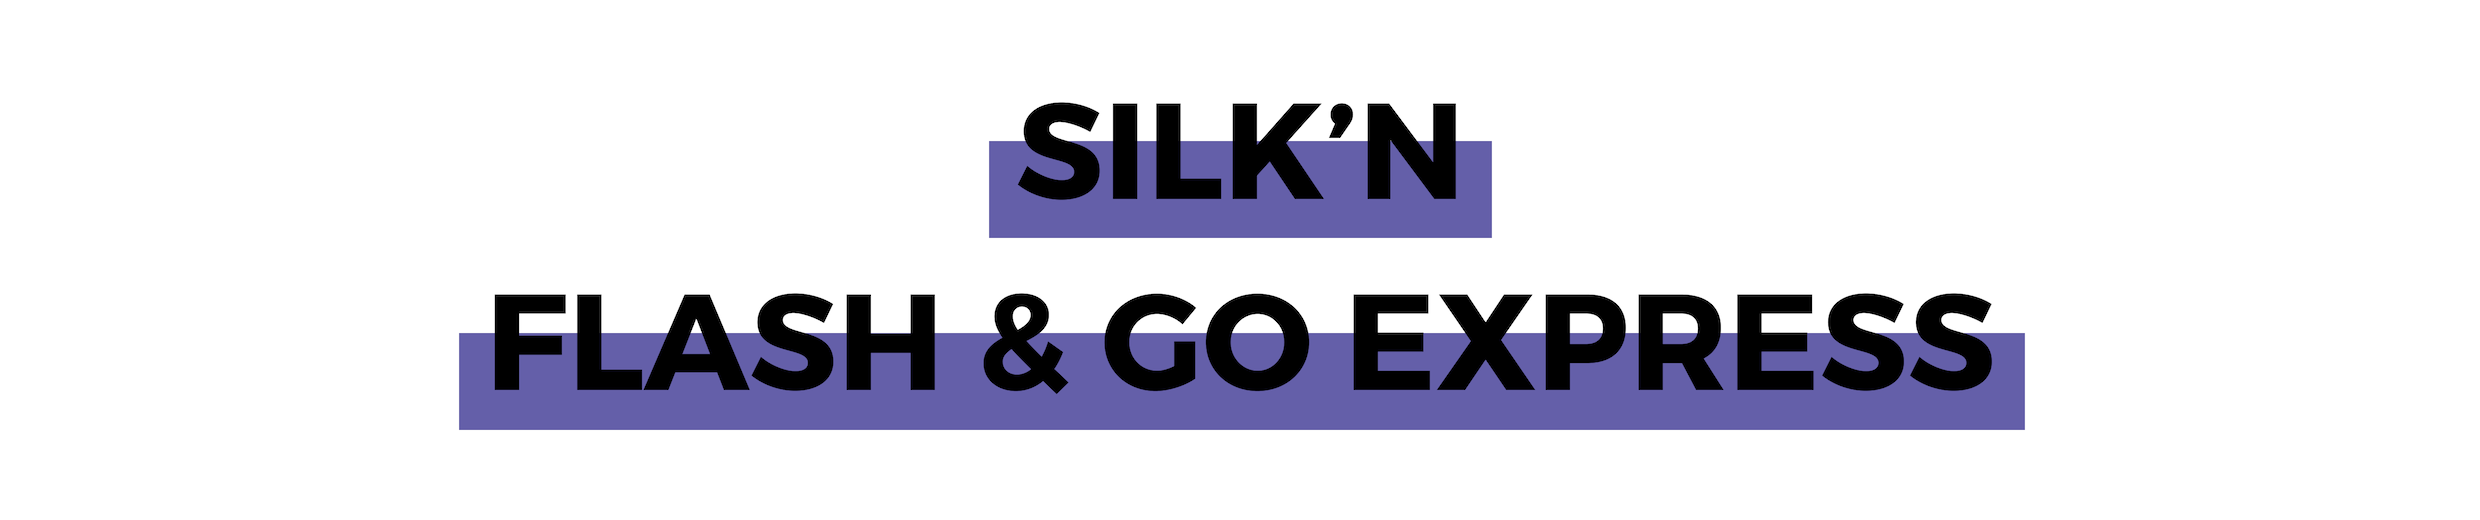 SILK'N FLASH & GO EXPRESS.png